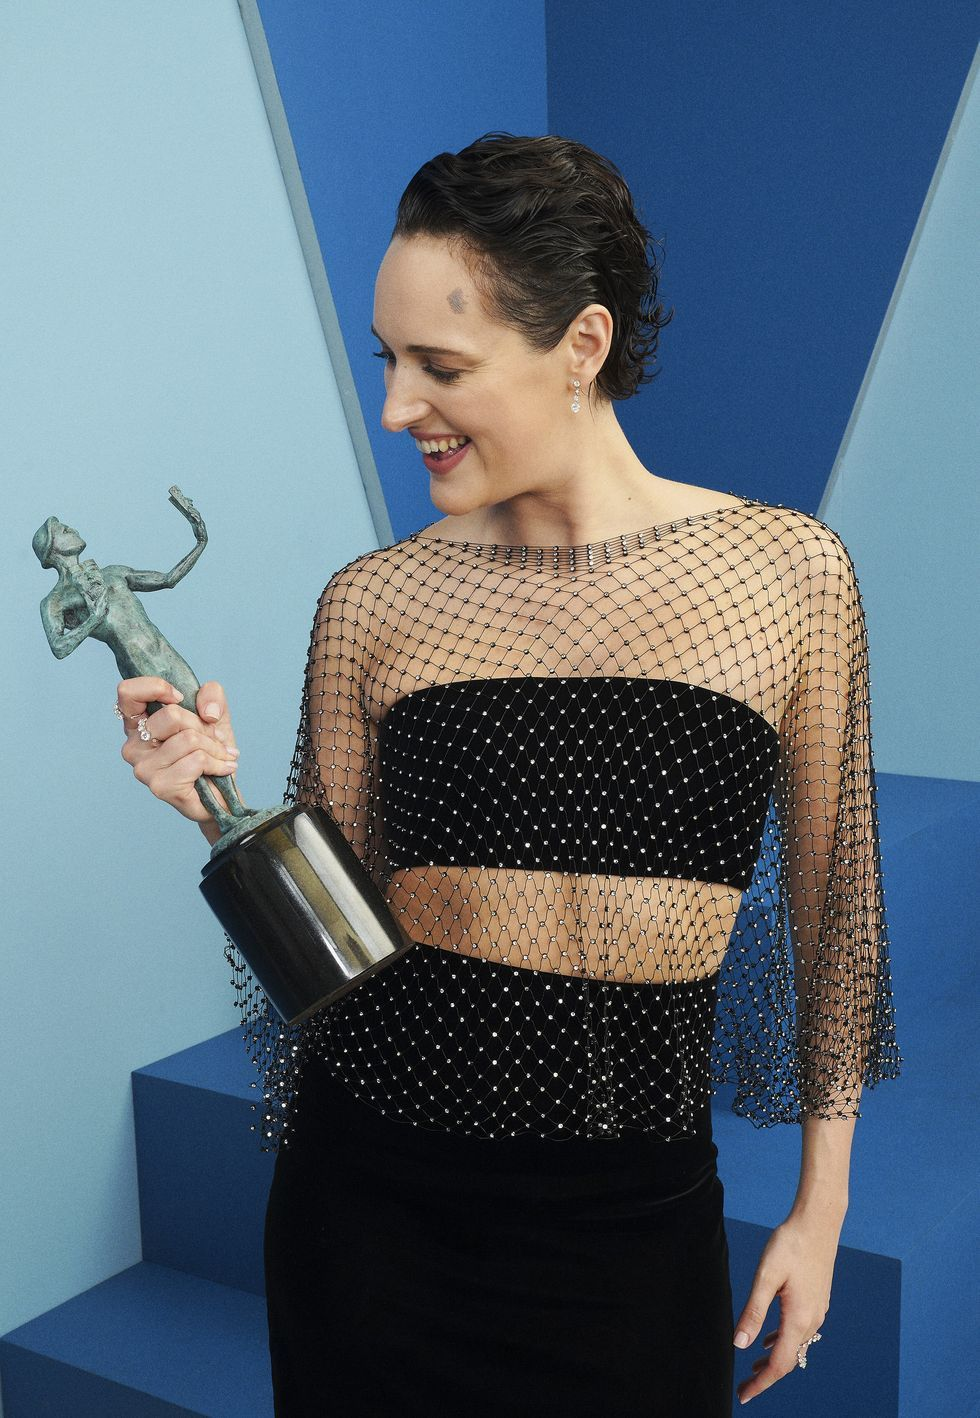 Phoebe Waller-Bridge Says That Her 'Six-Pack Was Drawn On' for the SAG Awards